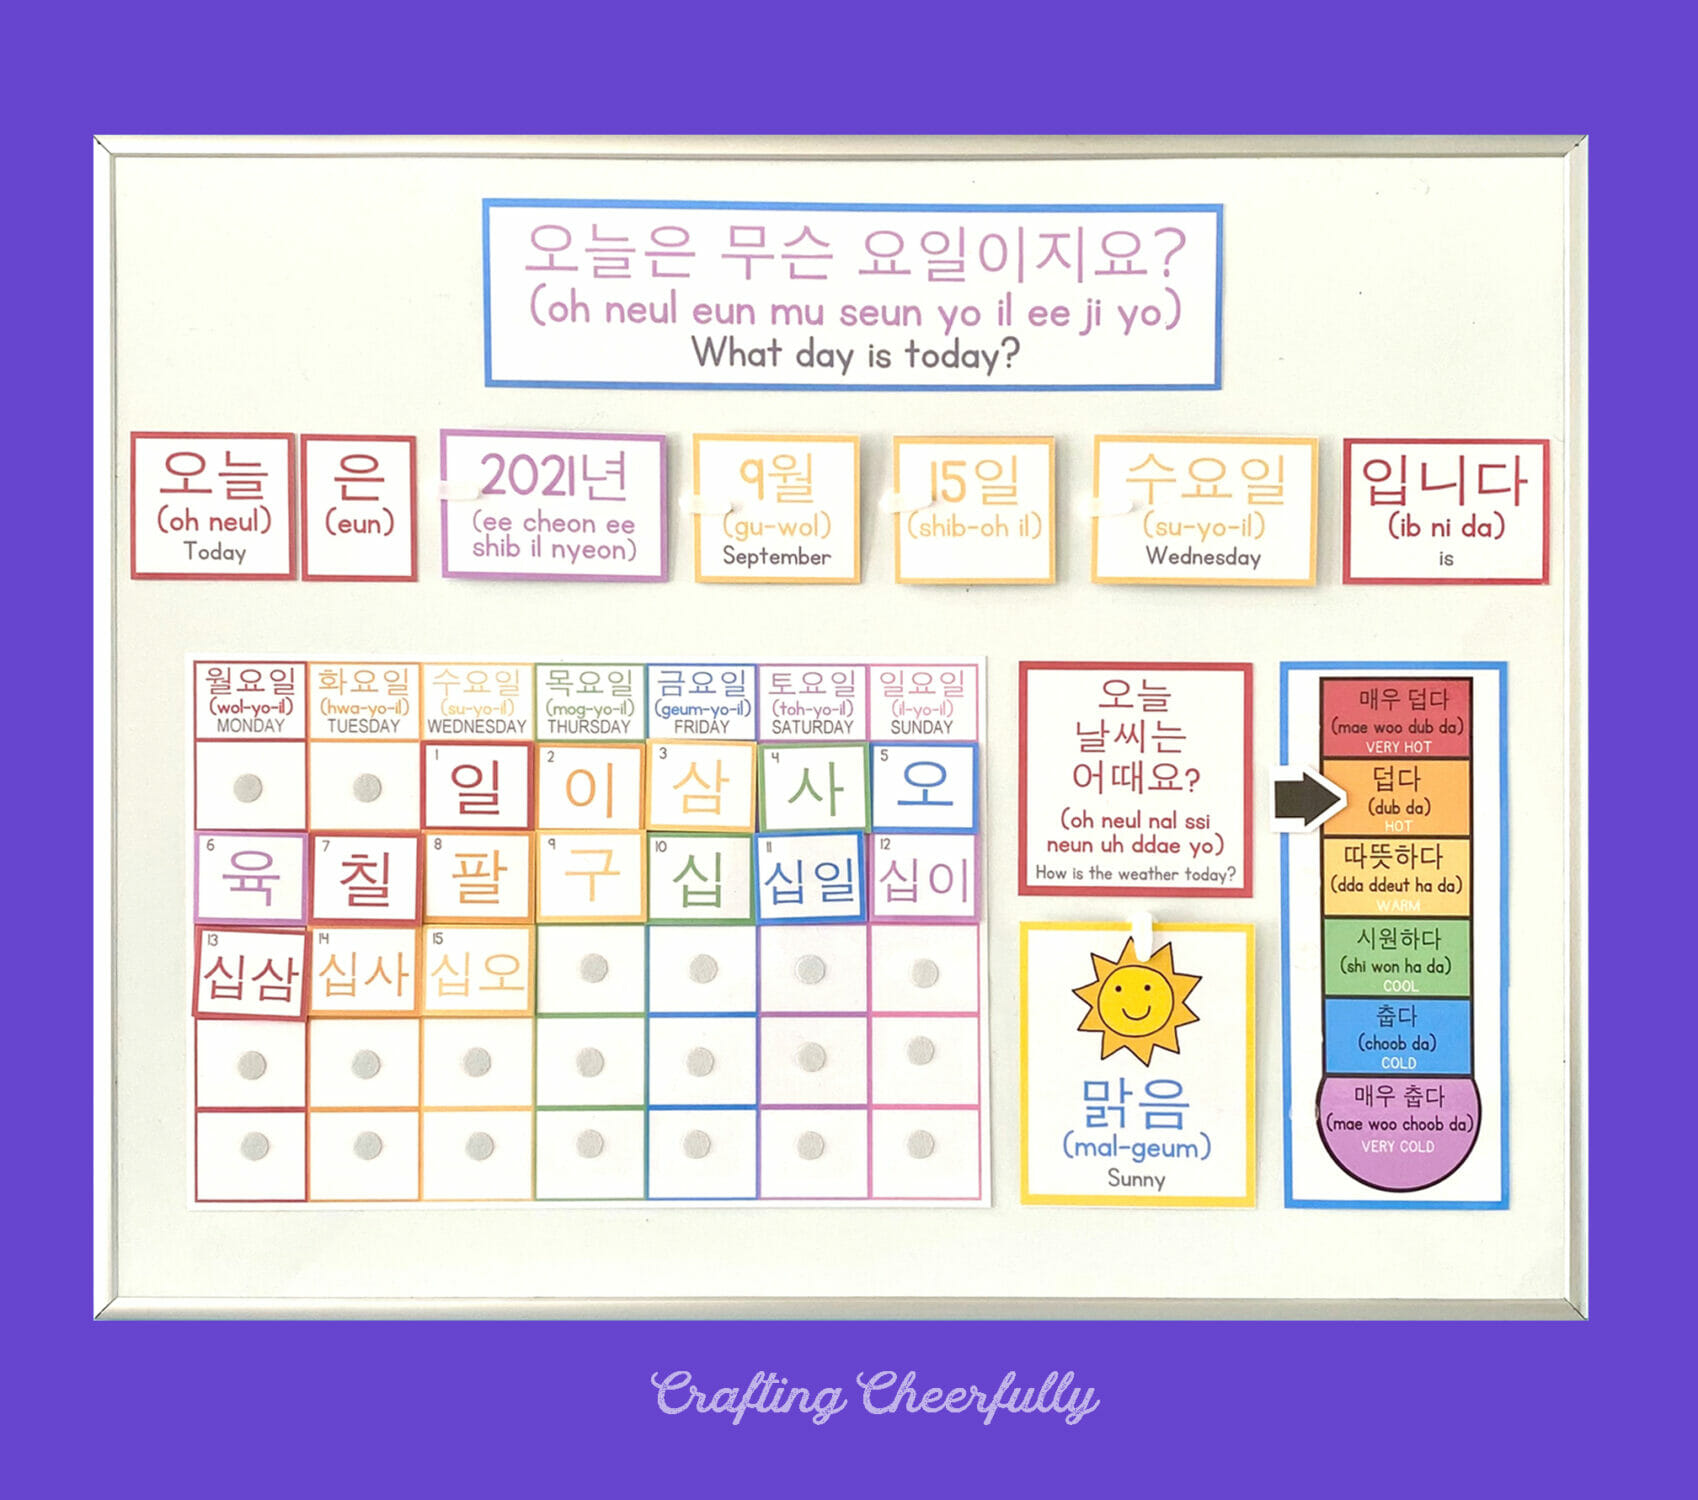 Korean kid's calendar on a white dry erase board with a purple background.